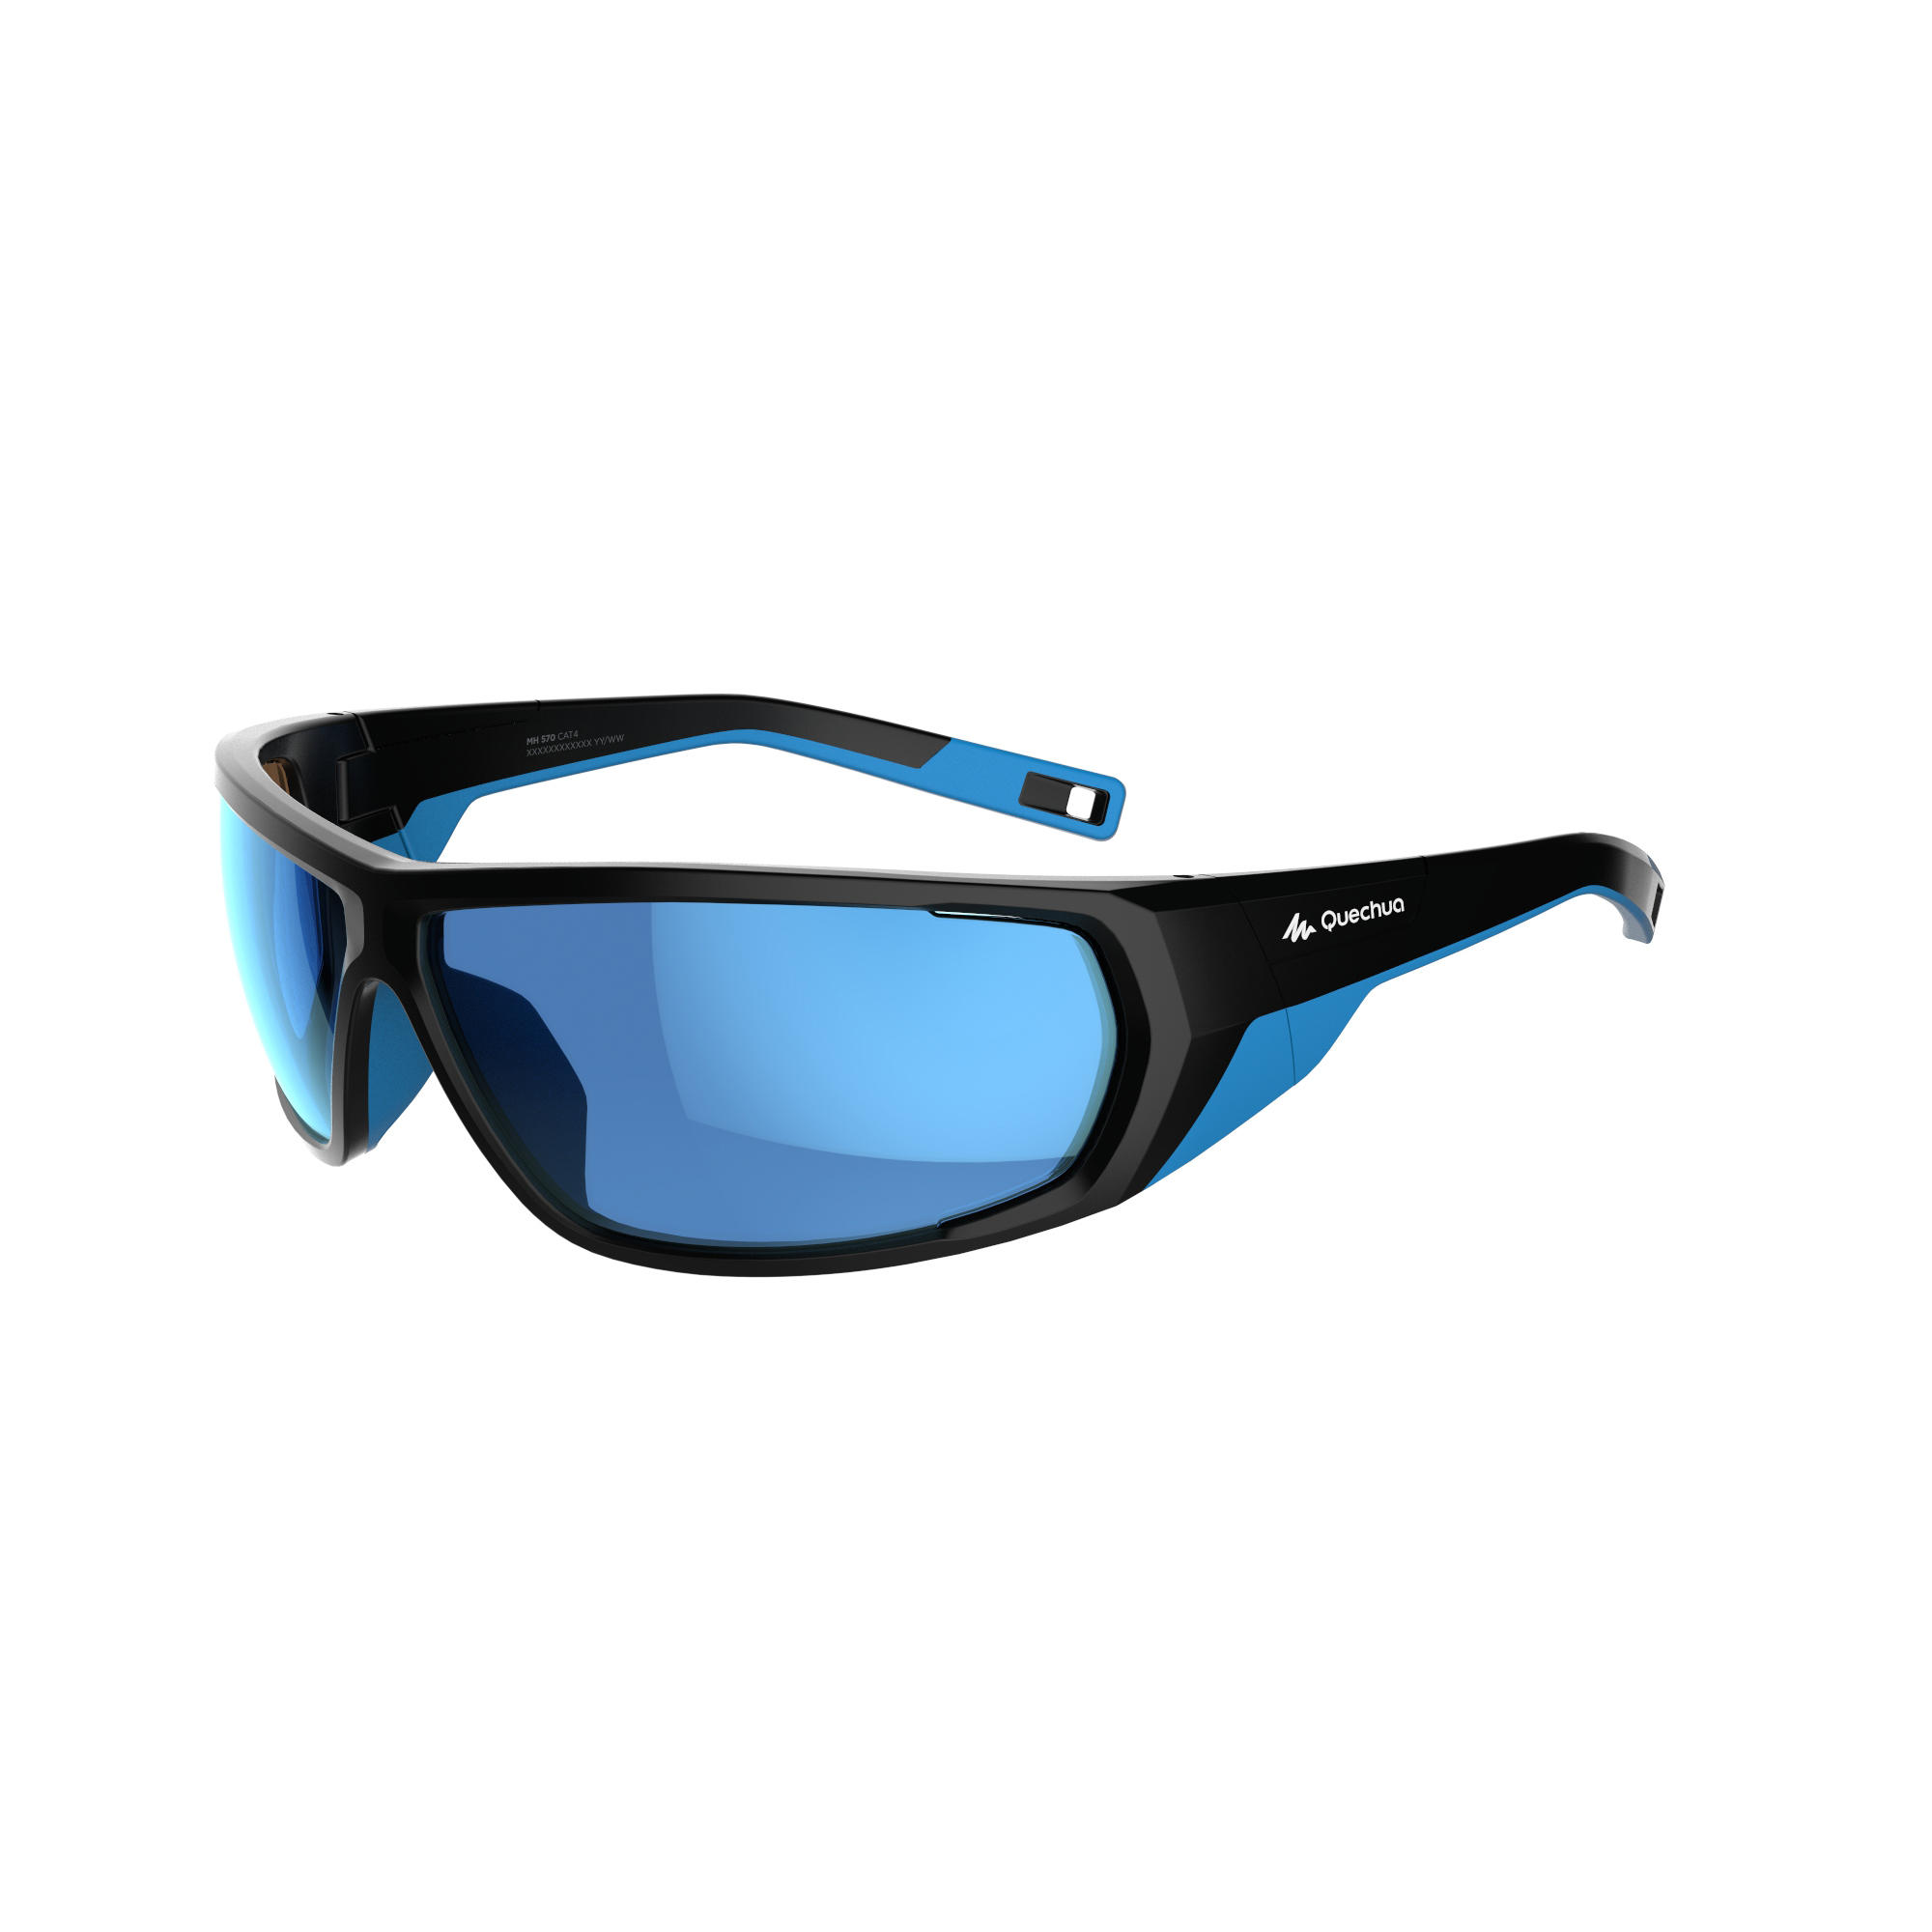 MH 570 Adult Category 4 Hiking Glasses - Black & Blue